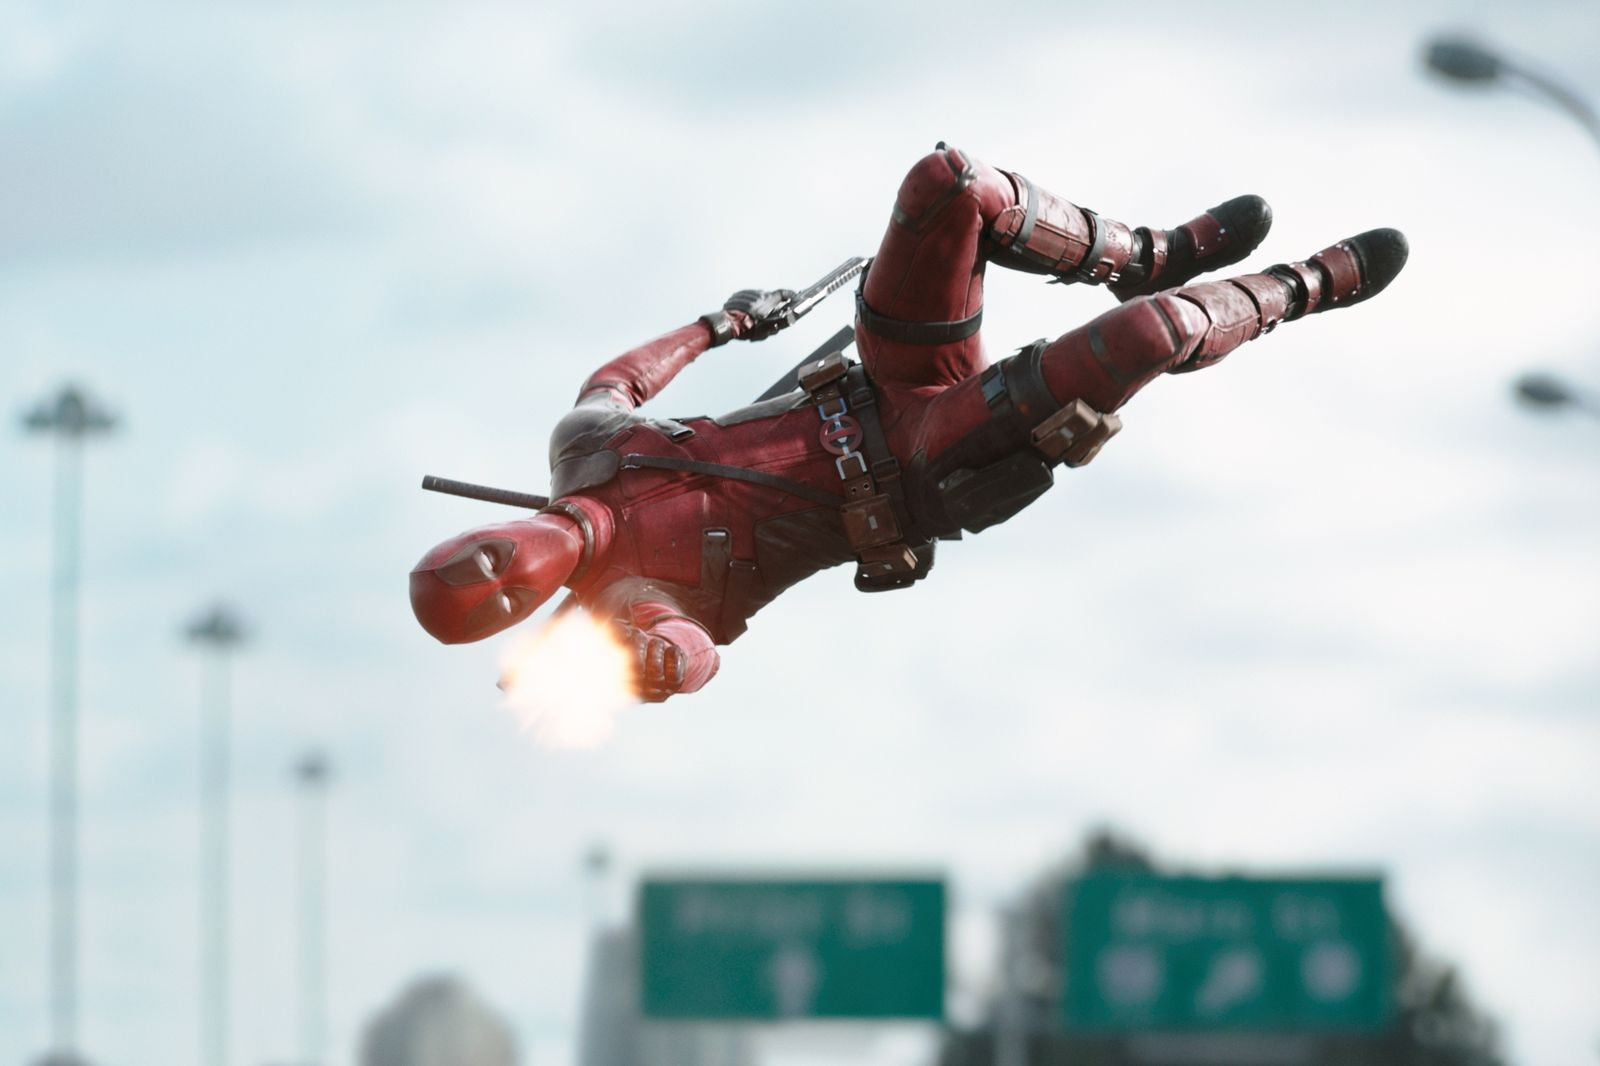 deadpool-326764l-1600x1200-n-cc4d97e3